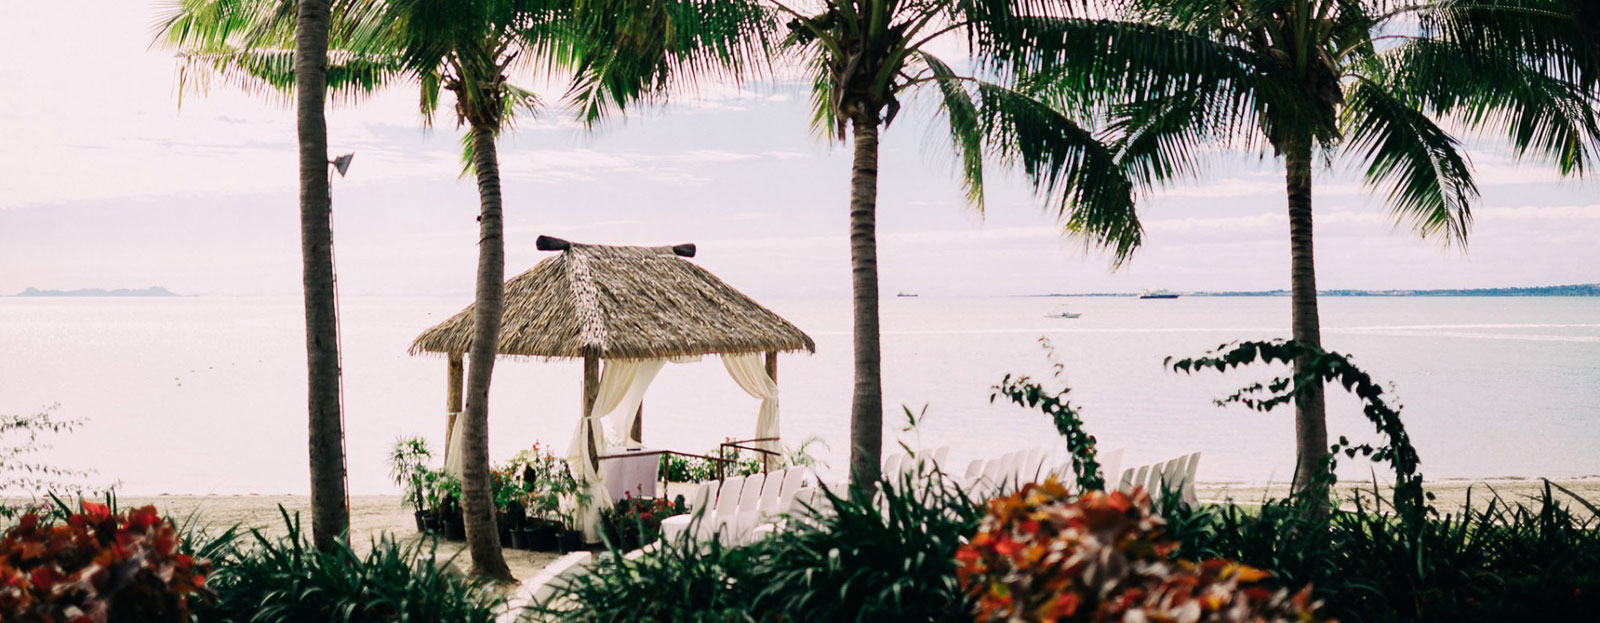 sofitel resort fiji wedding packages